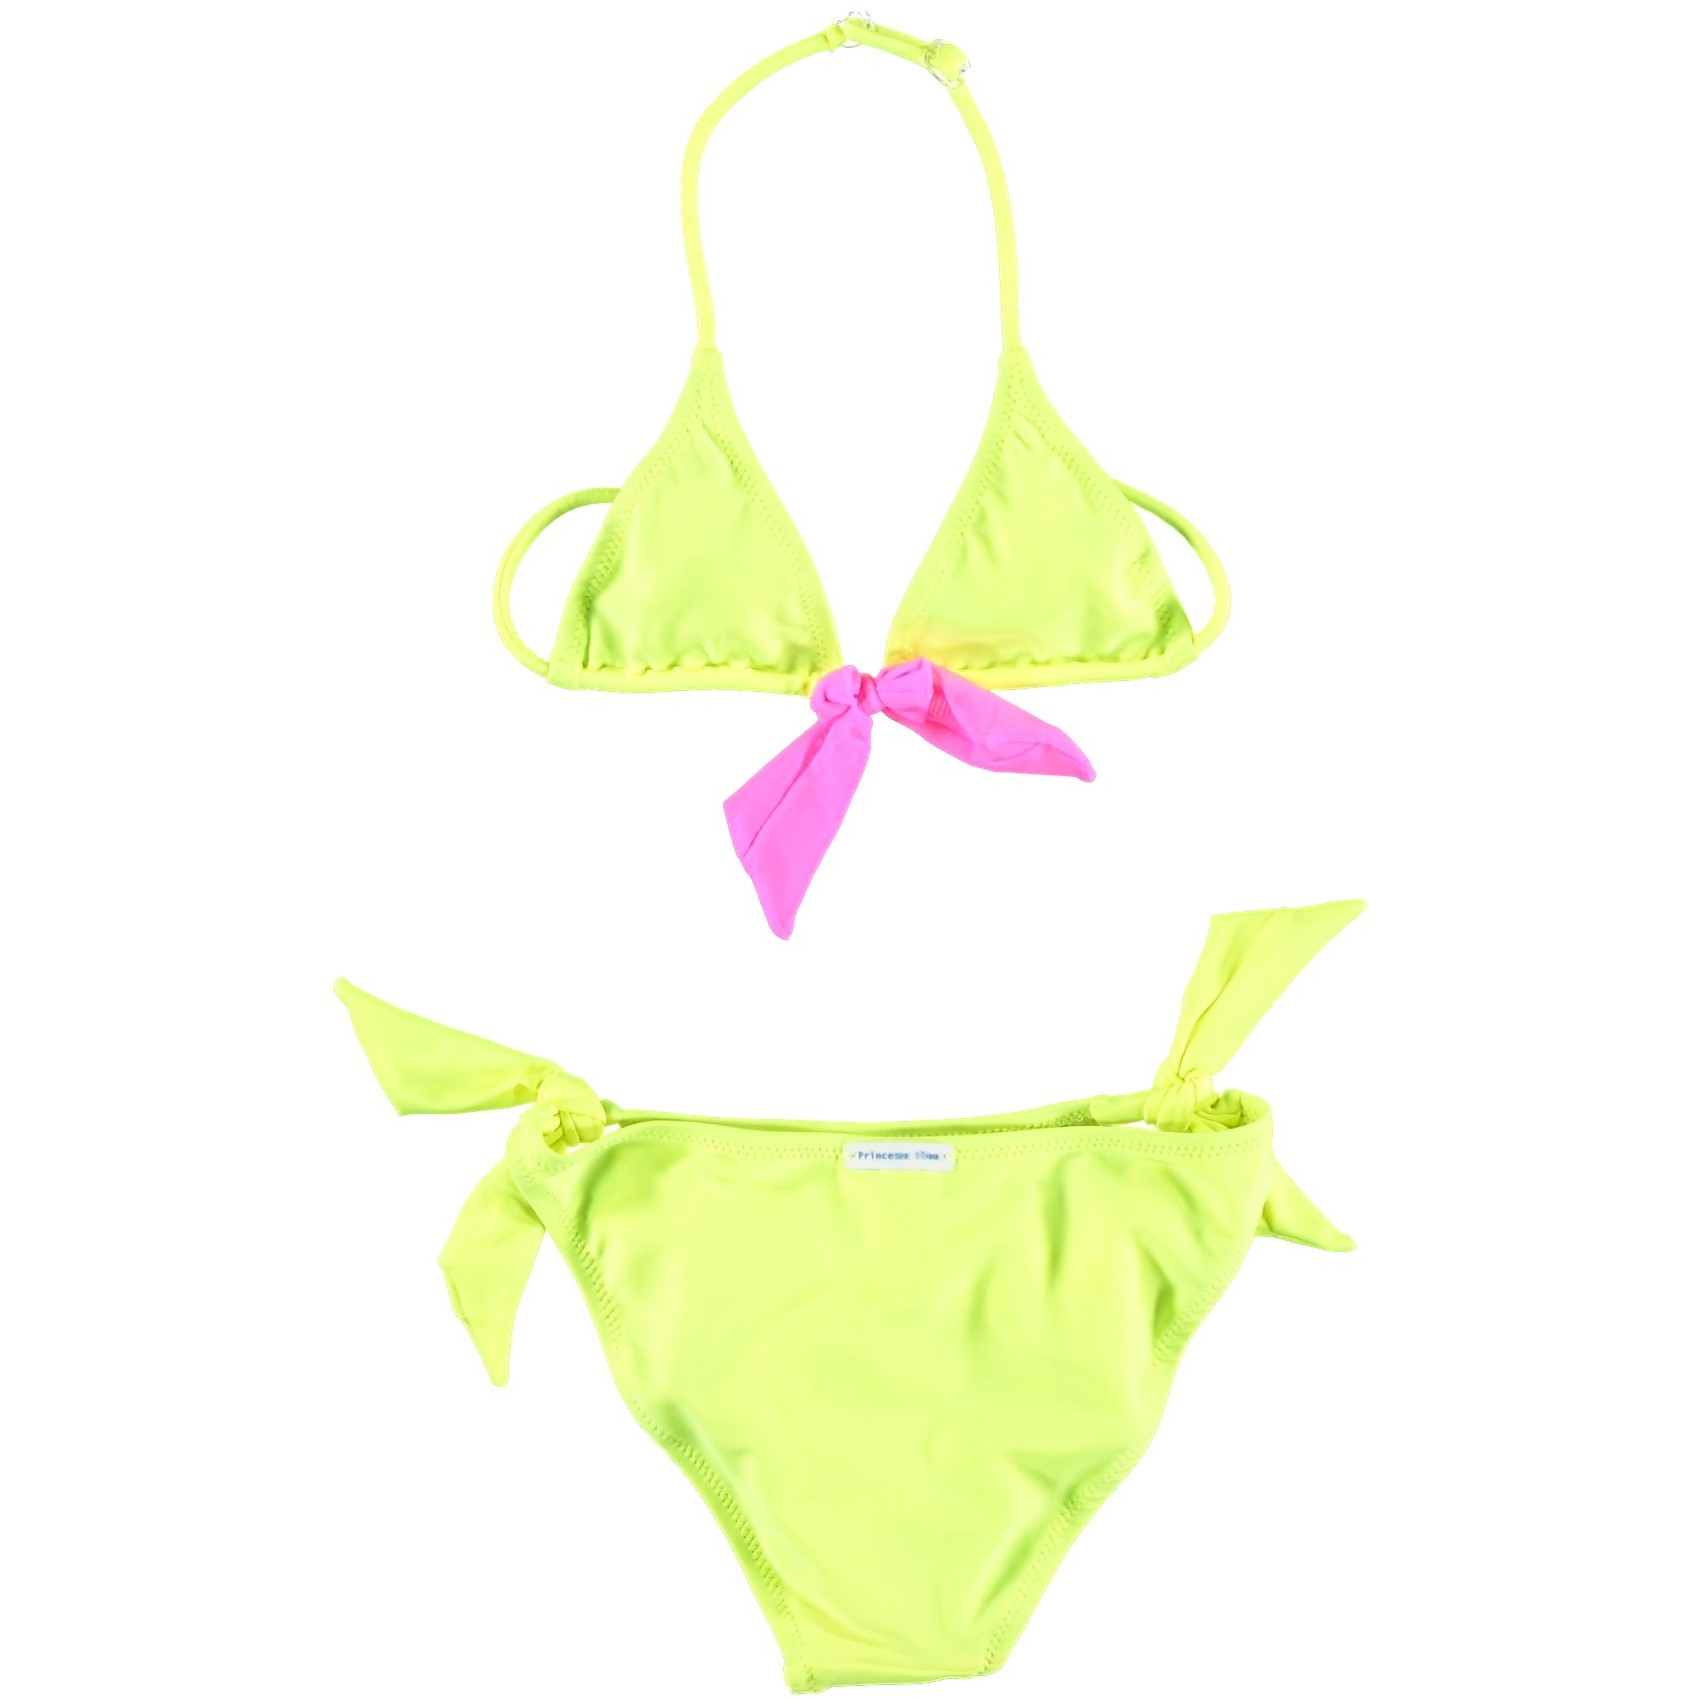 maillot de bain fille 2 pi ces rose et jaune fluo. Black Bedroom Furniture Sets. Home Design Ideas